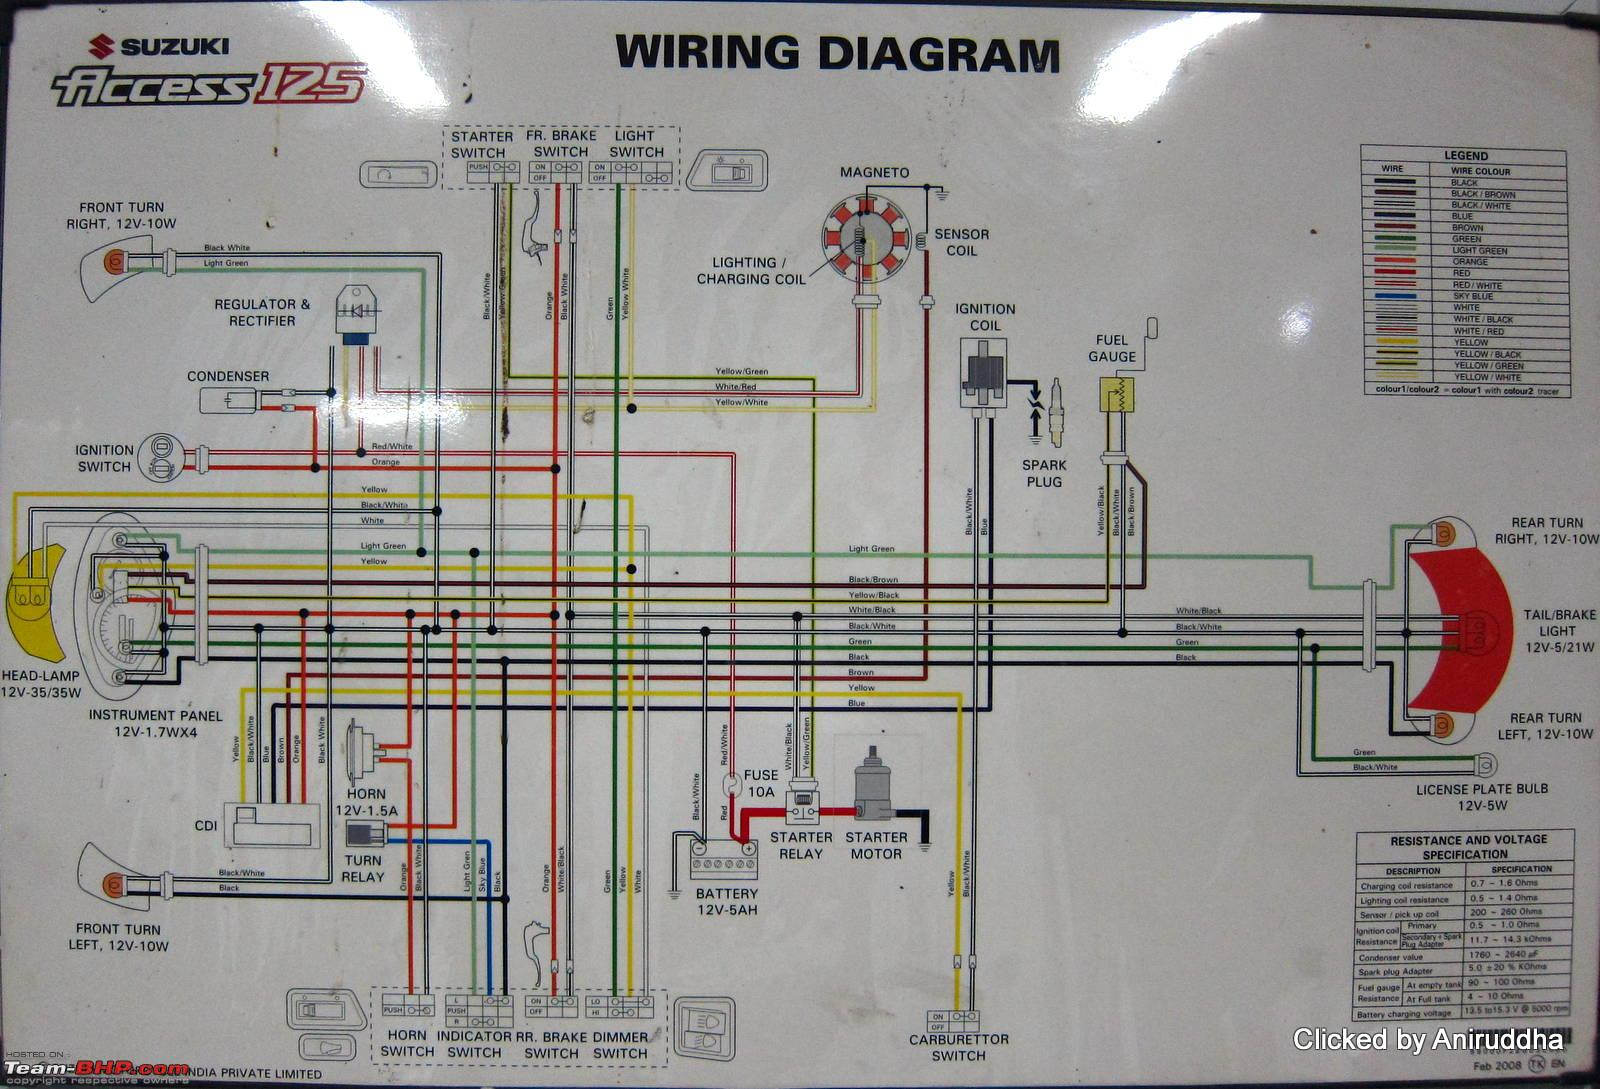 hight resolution of access wiring diagram wiring diagrams access control system wiring diagram access wiring diagram